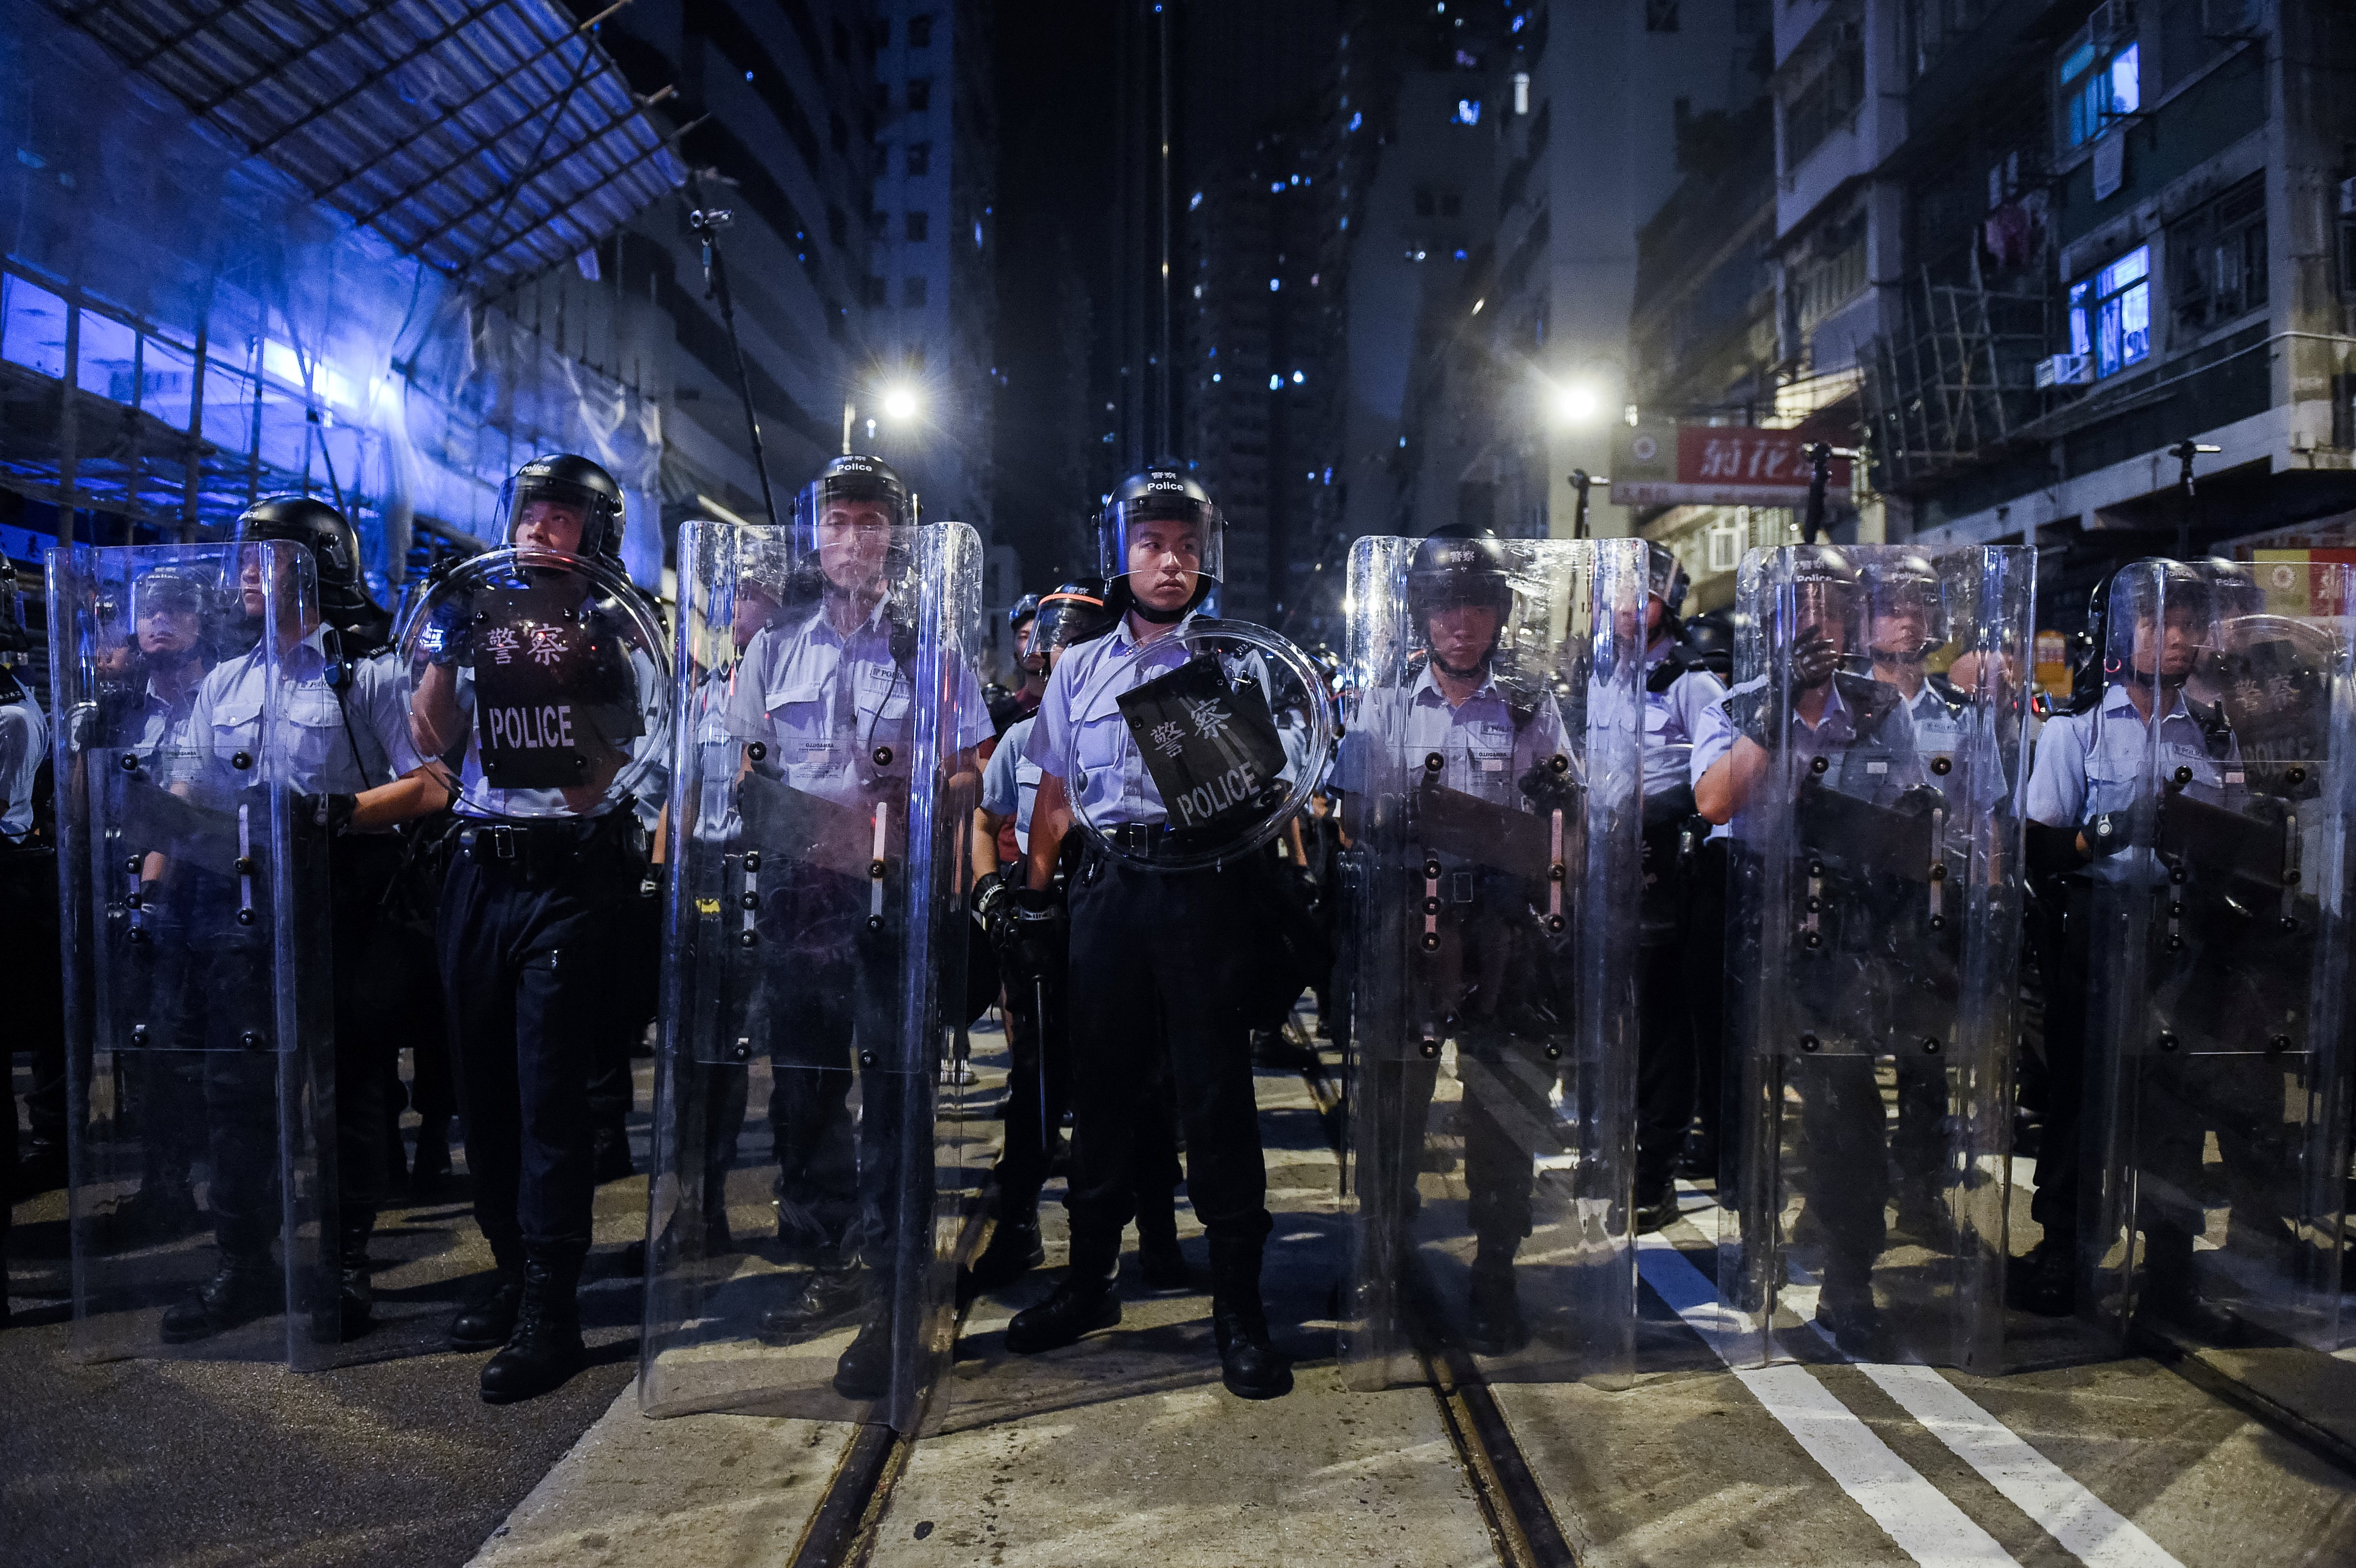 Riot police stand guard during a protest in Hong Kong early on Nov. 7, 2016